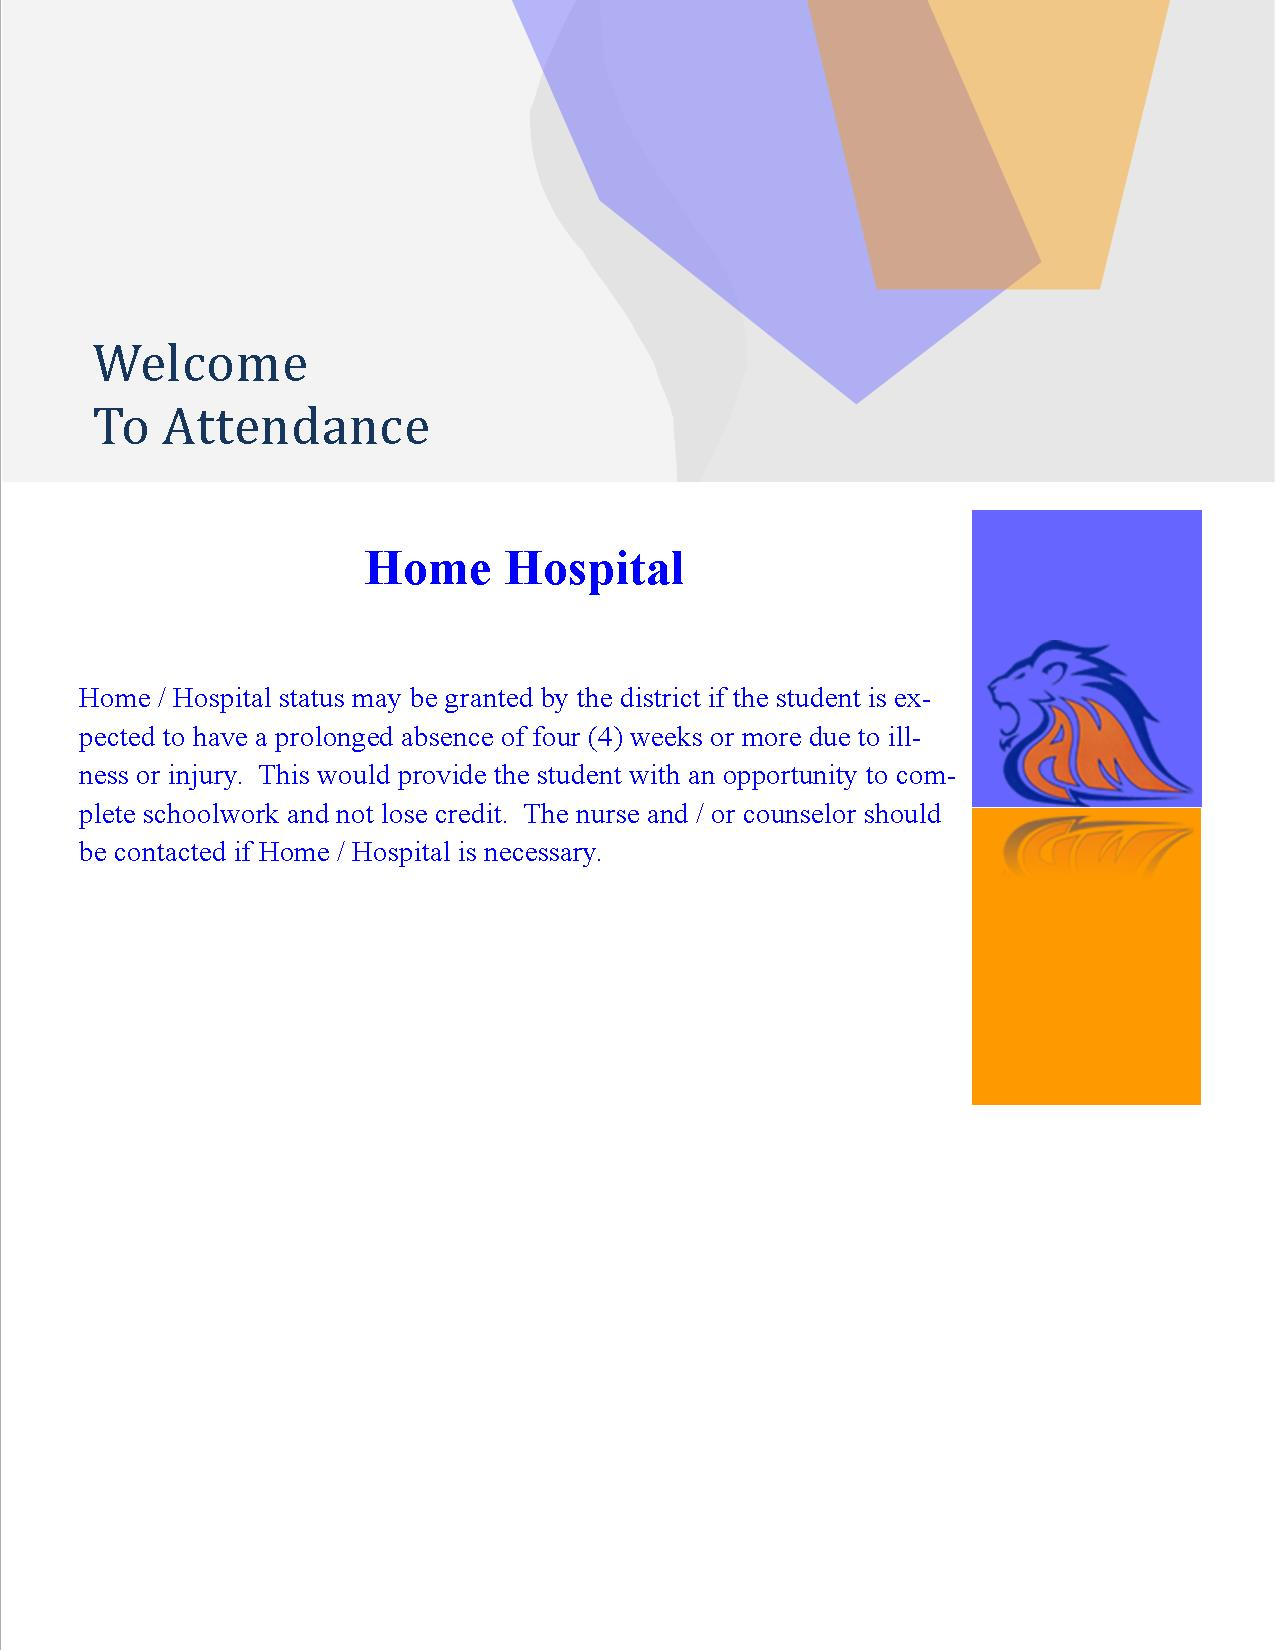 HomeHospital